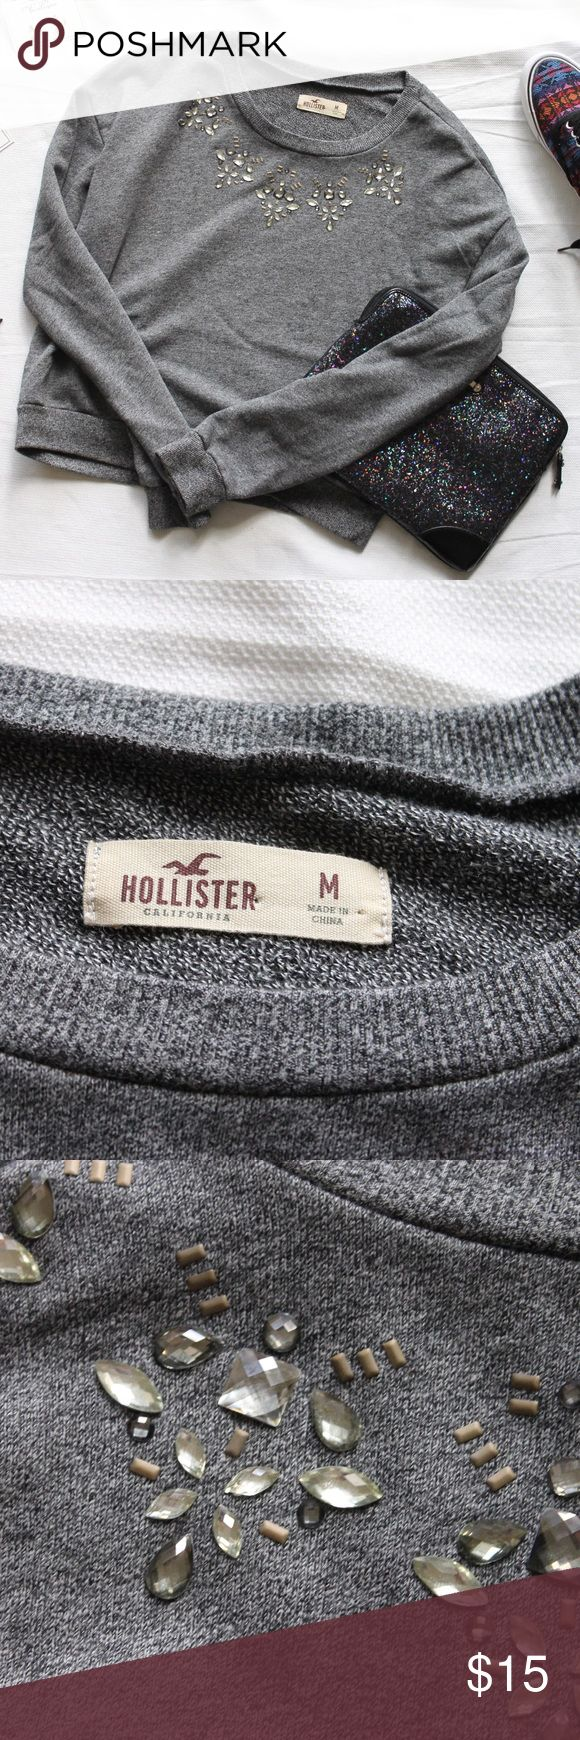 """Hollister • Cropped, Marled, Embellished Sweater It's adjective central up in here, you guys. But for real, this sweater has it all - a slightly cropped cut, marled gray color, long sleeves, jeweled neckline, and an ungodly soft material. Looks super cute dressed up with a skirt or thrown over some jeans. Approximate measurements laying flat: pit to pit 18.5"""", waist 18, length 20. Excellent condition, only worn a few times. Hollister Sweaters Crew & Scoop Necks"""